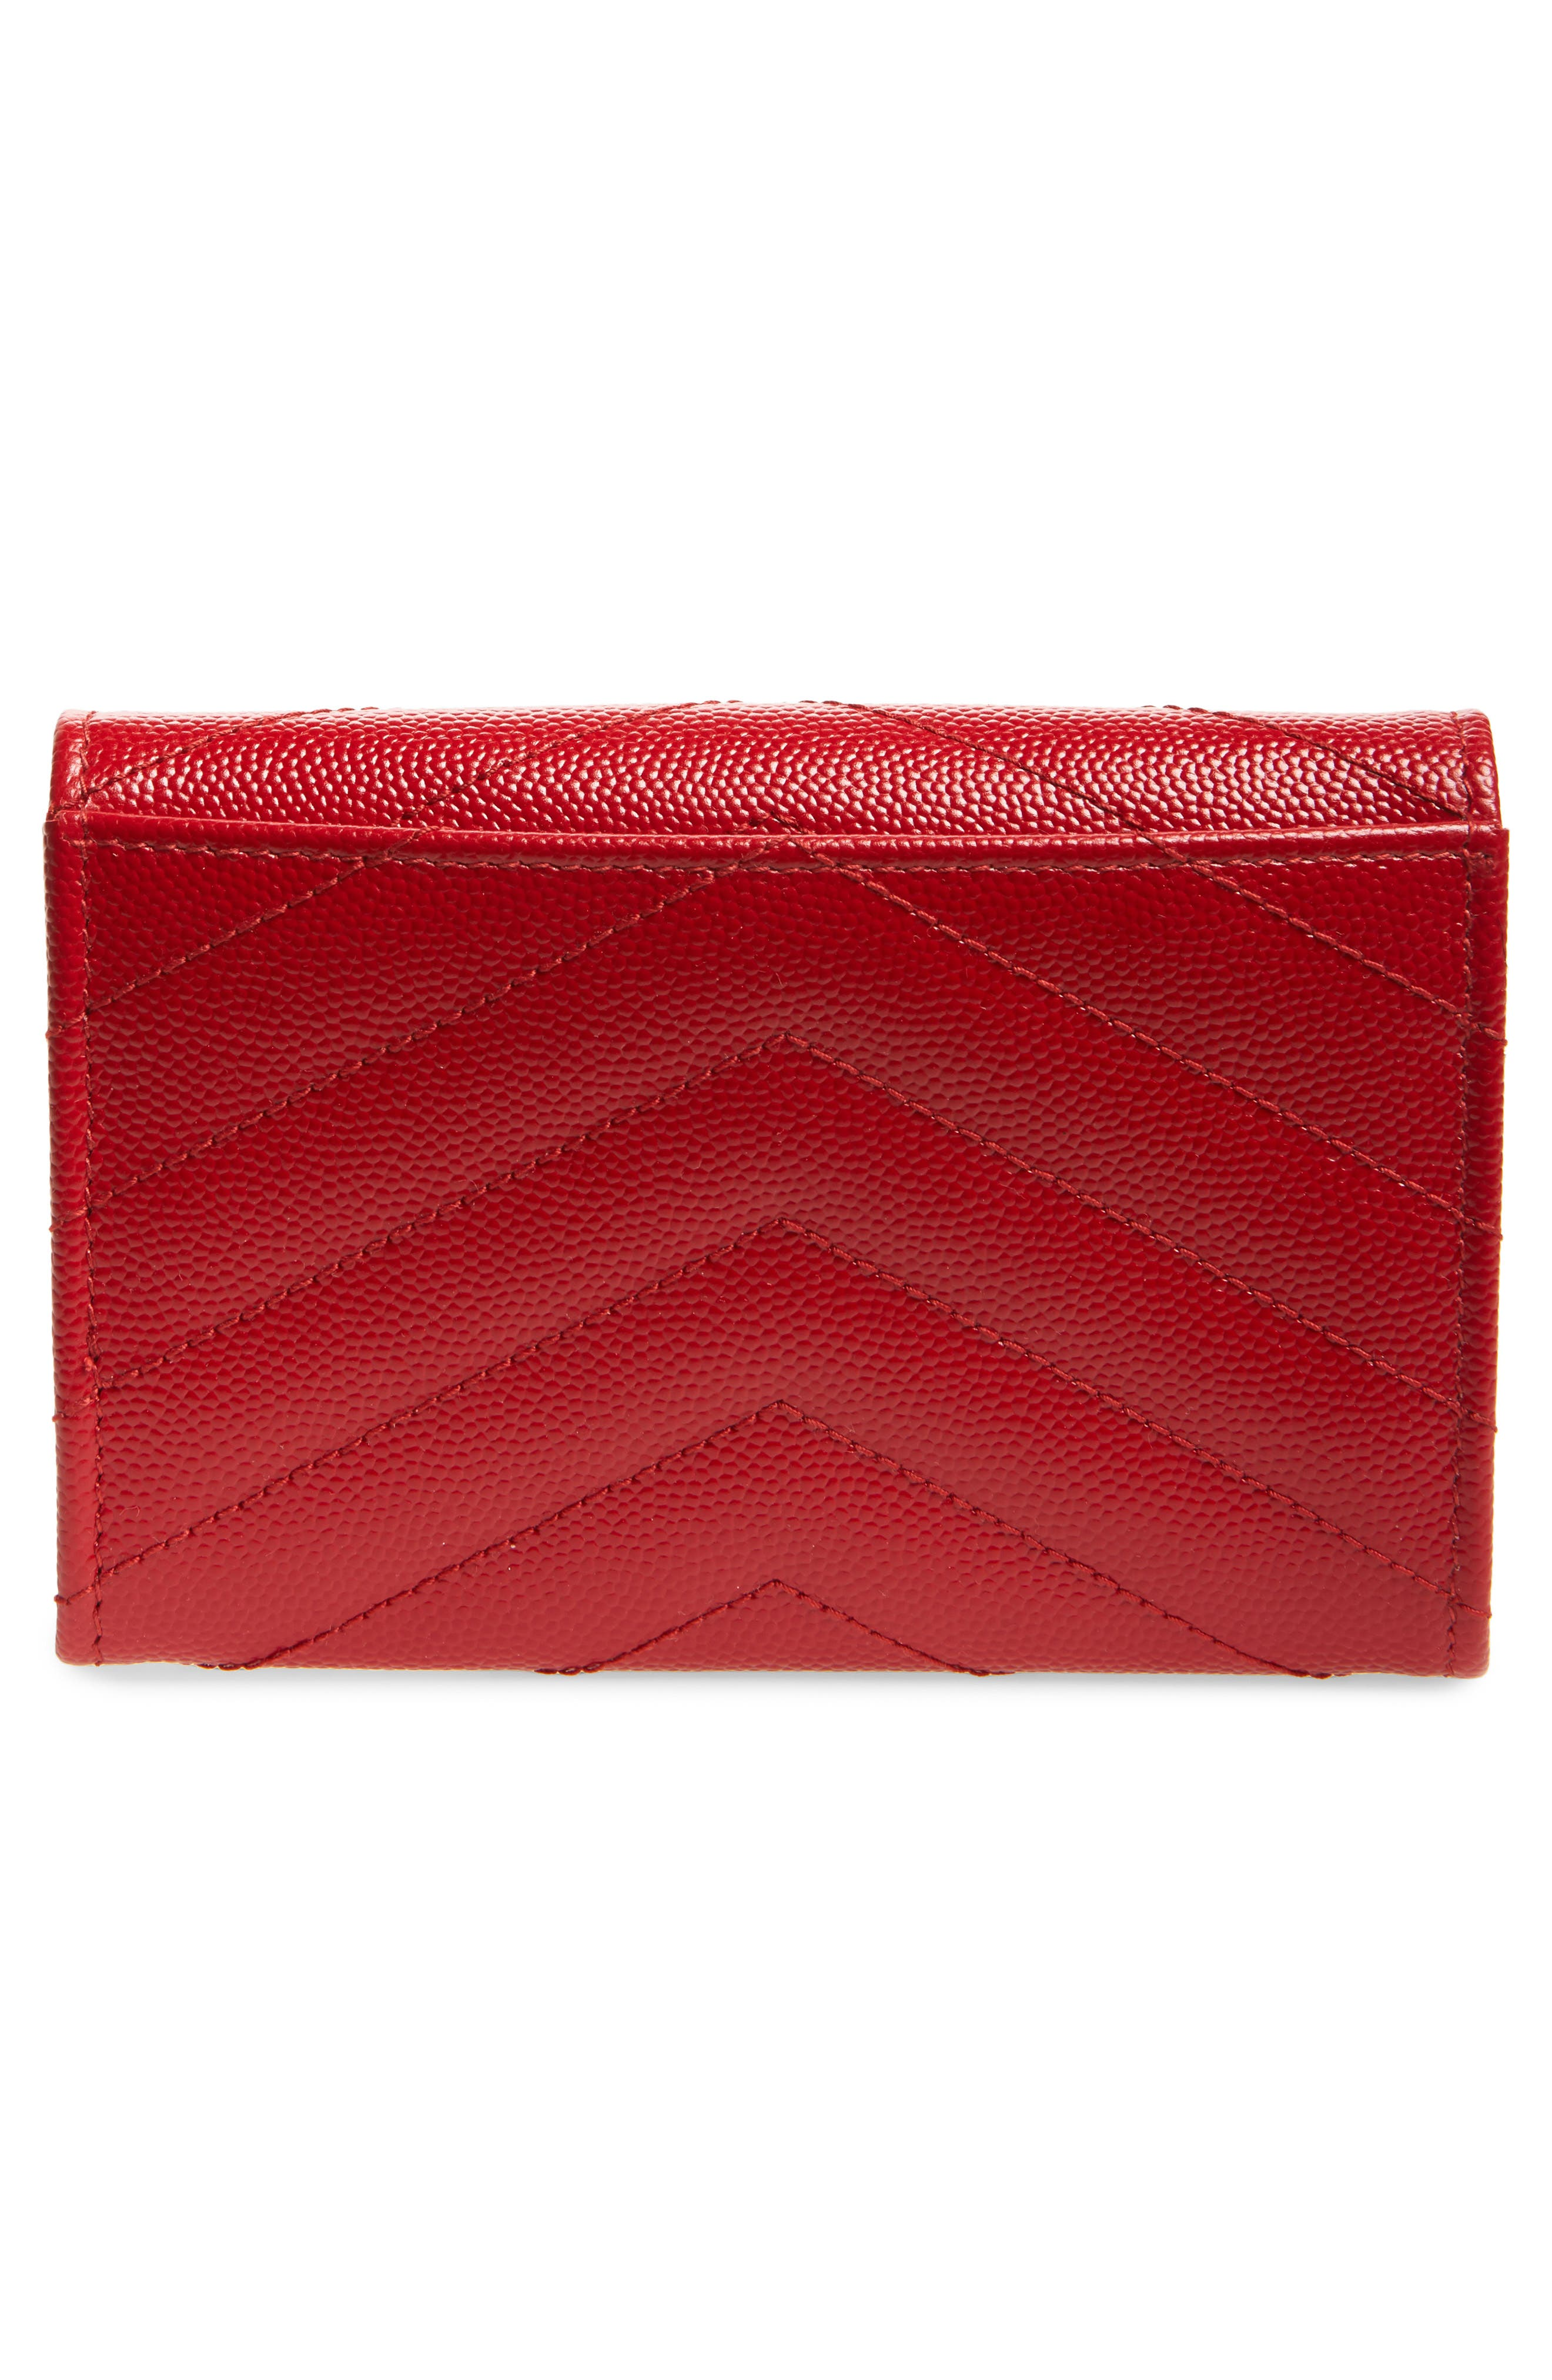 'Monogram' Quilted Leather French Wallet,                             Alternate thumbnail 4, color,                             BANDANA RED